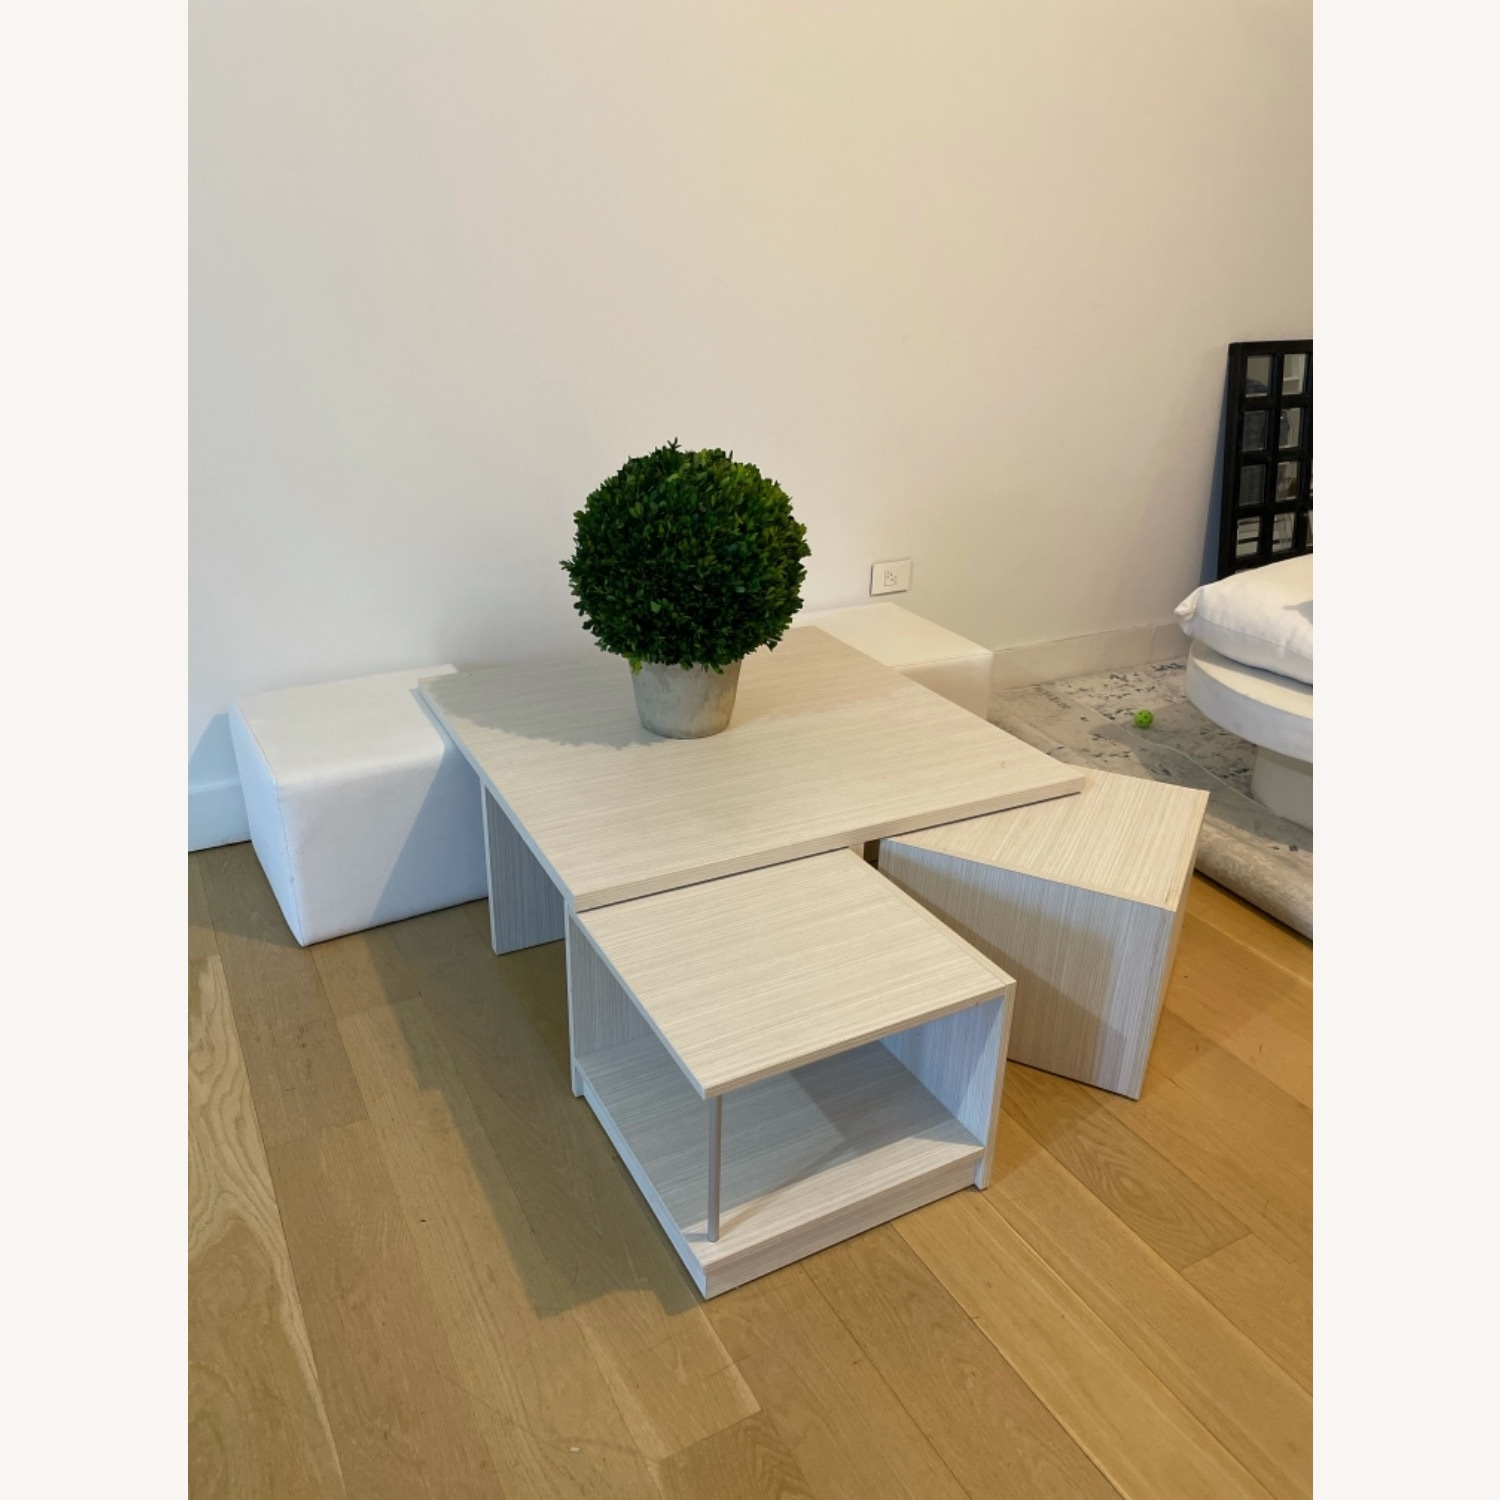 Modani Wooden Coffee Table with Ottoman Stools - image-8